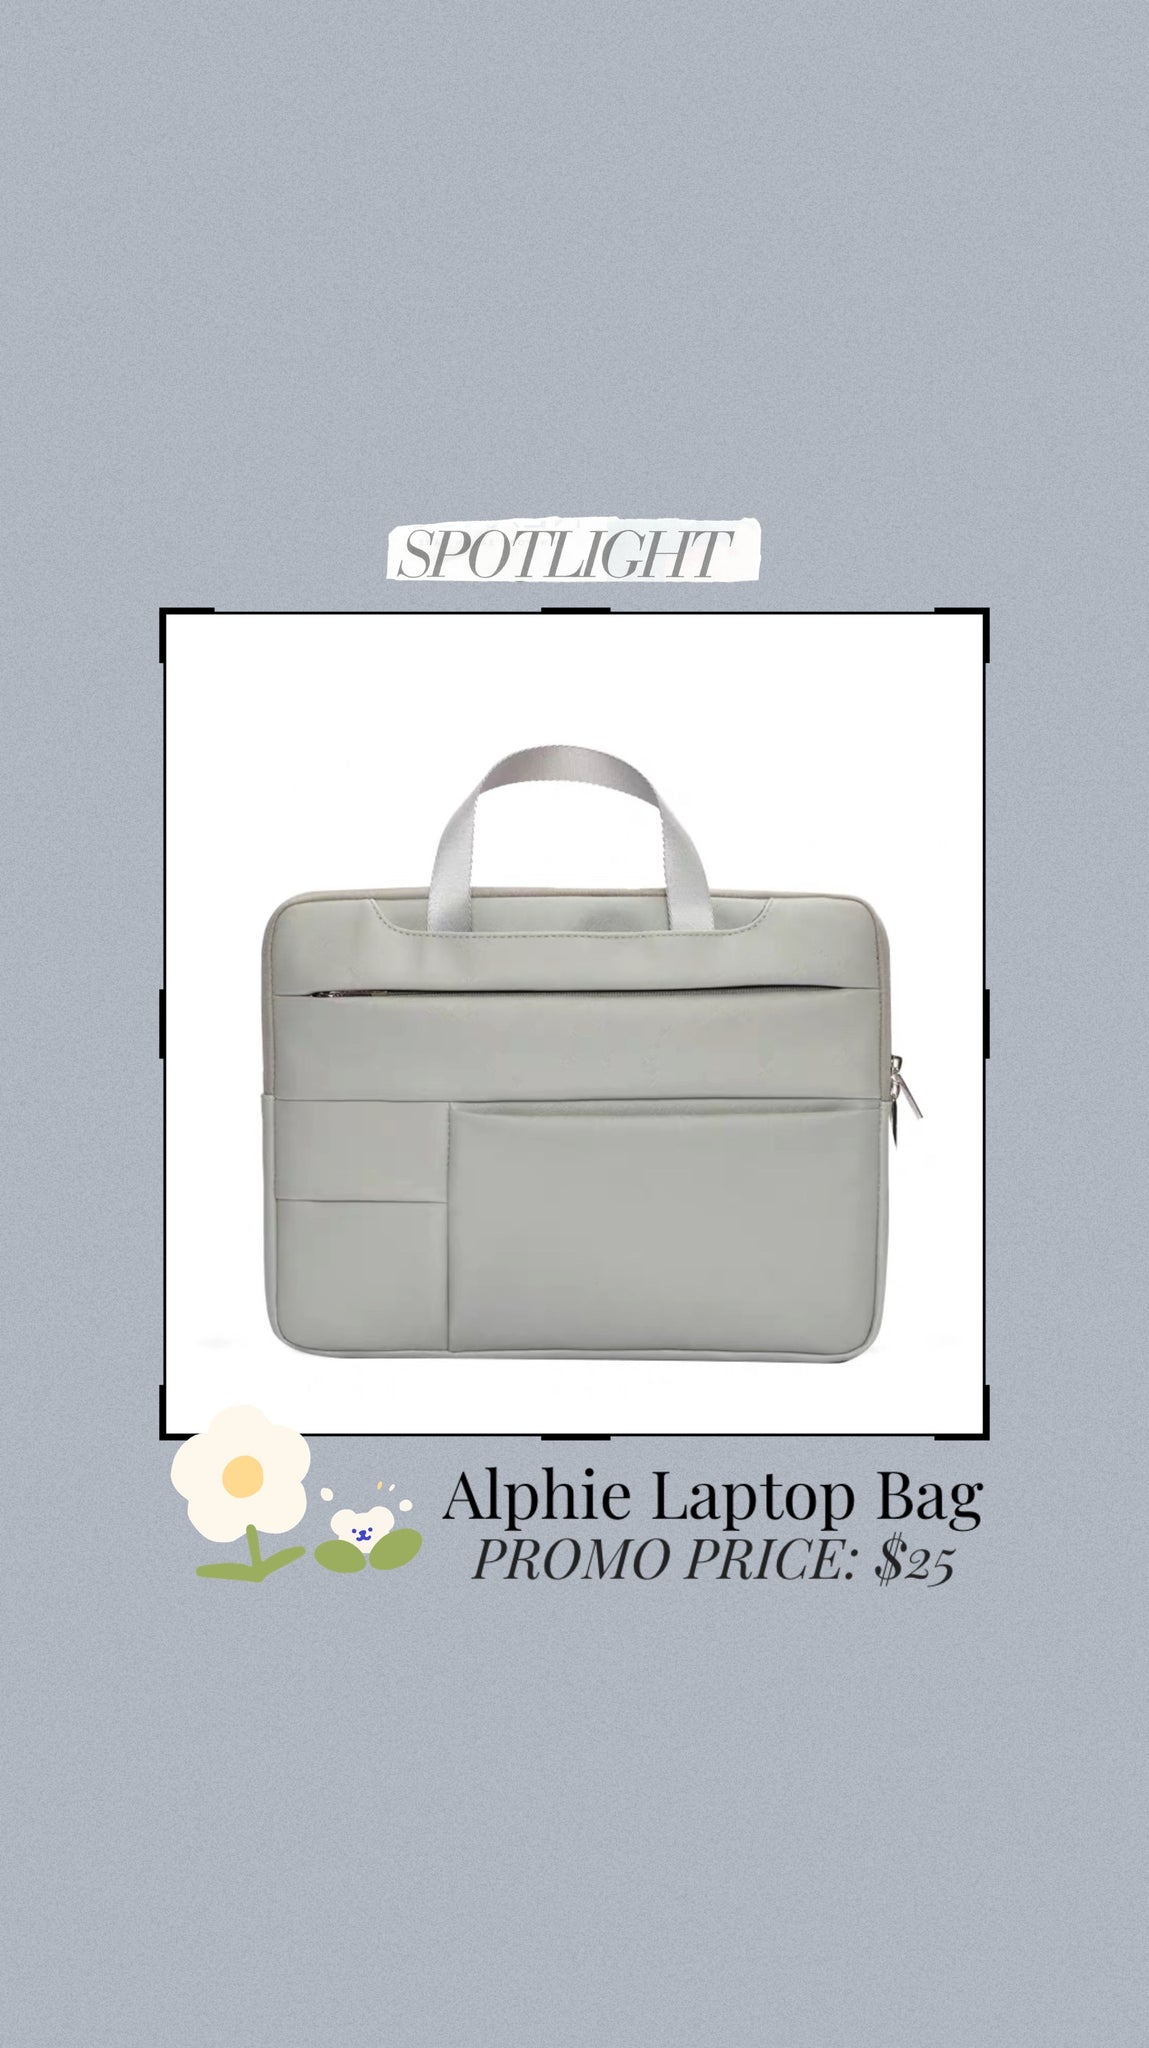 Alphie Laptop Bag